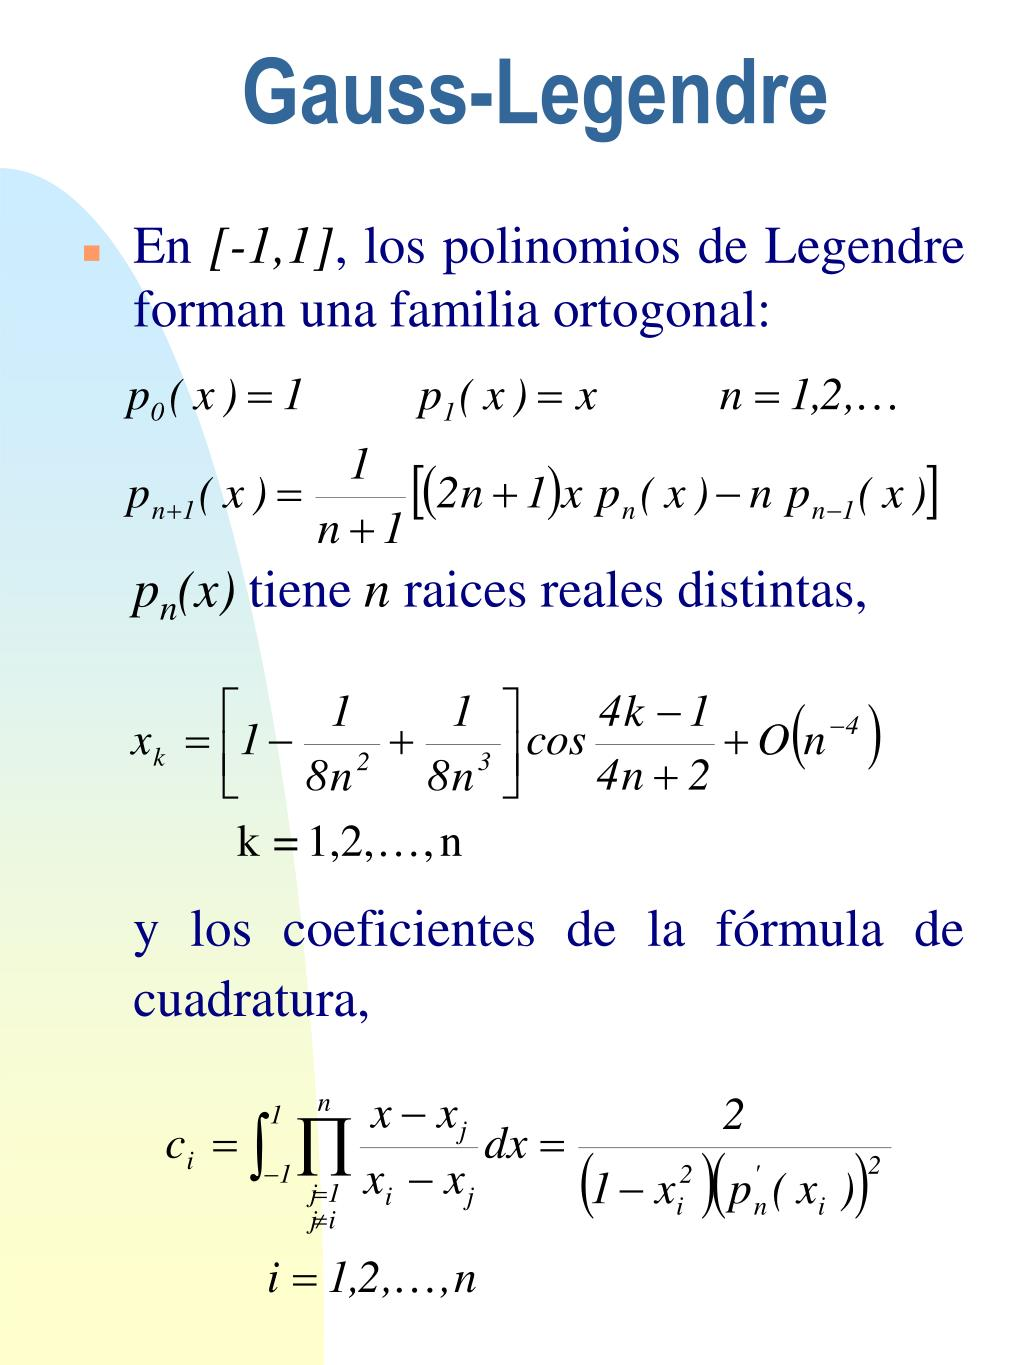 Gauss-Legendre